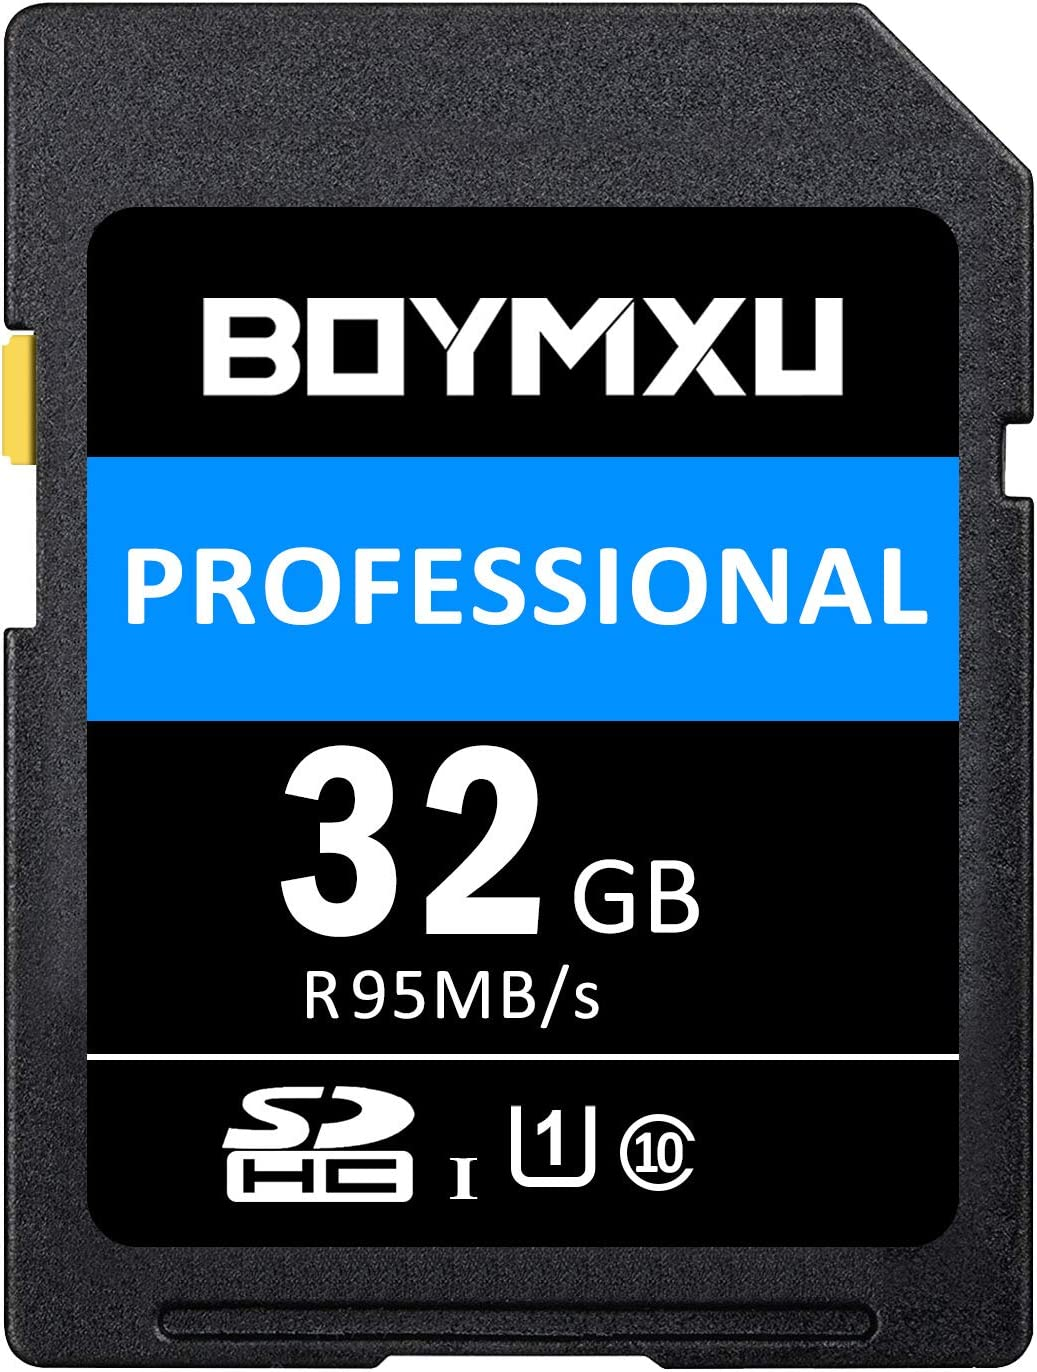 32GB SD Card, BOYMXU Professional 1000 x Class 10 SDHC UHS-I U3 Sd Card Compatible Computer Cameras and Camcorders, SD Memory Card Up to 95MB/s, ...